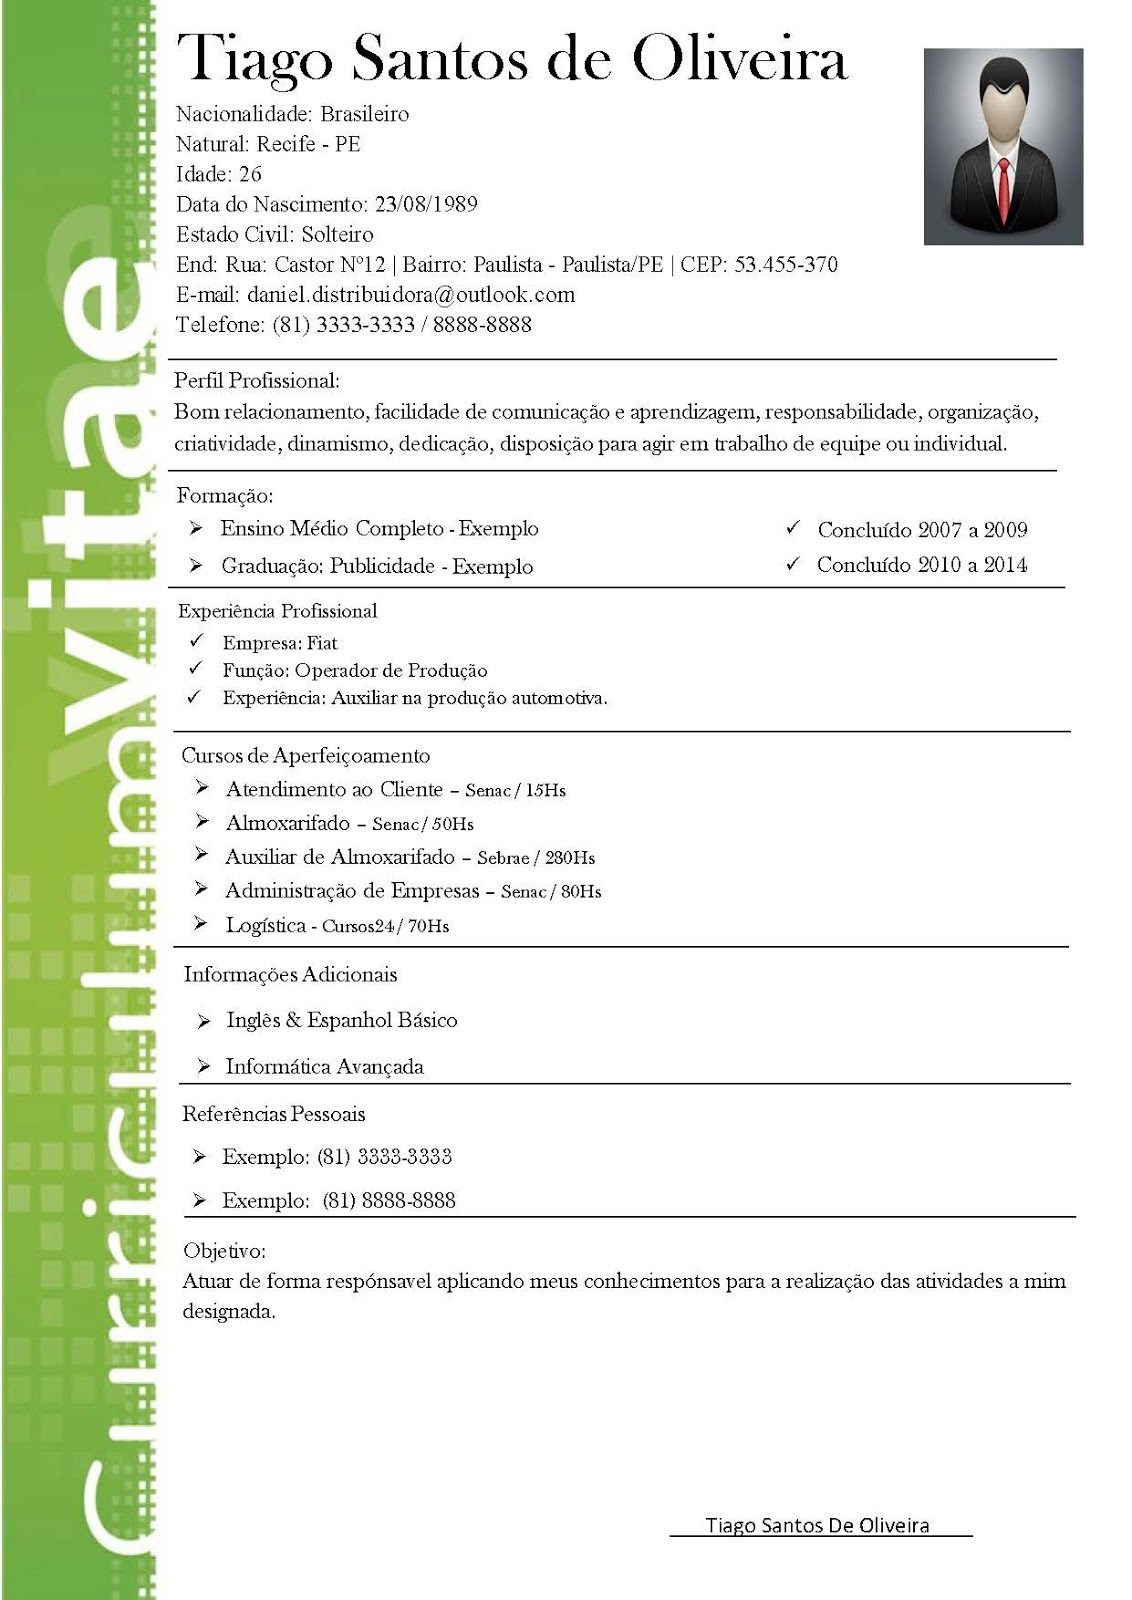 Modelo De Curriculum Vitae Libreoffice  Modelo De. Sample Cover Letter For Unsolicited Resume. Resume Examples Event Planner. Resume Help Ryerson. Letter Of Intent Sample Volunteer. Cover Letter For Project Manager With No Experience. Curriculum Vitae Template Word. Joining Letter Template Word. Curriculum Vitae Exemple Parfait